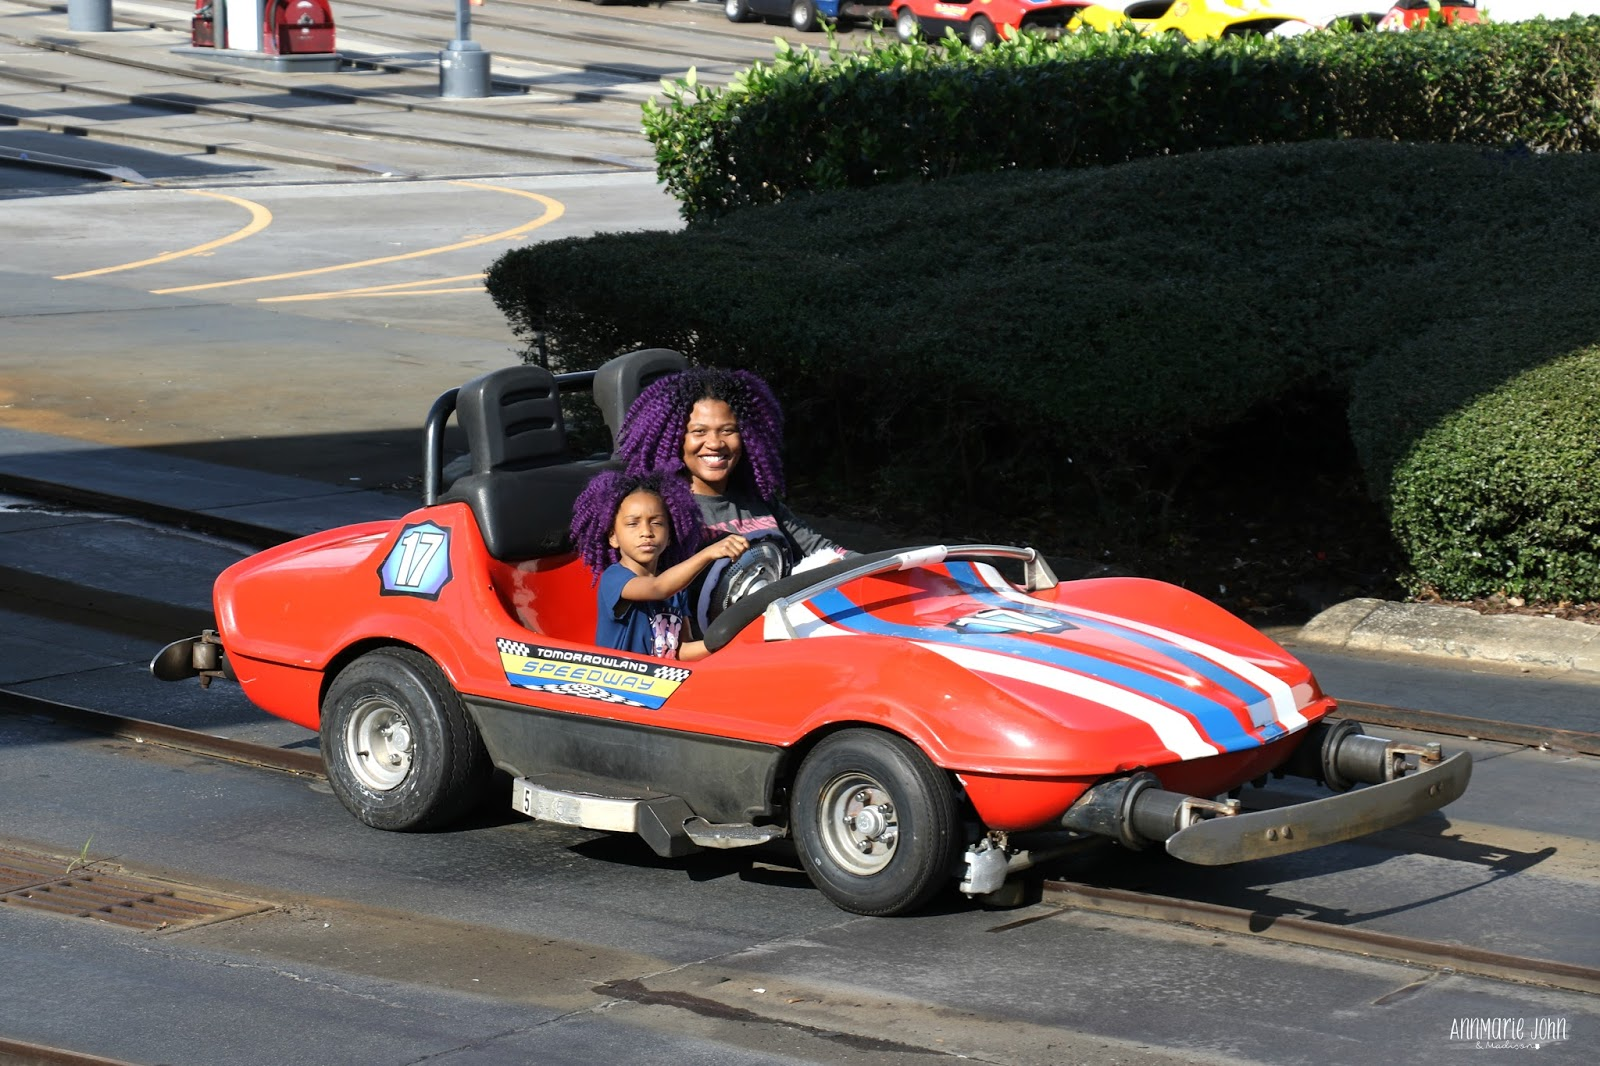 think of it as a bigger version of their power wheels kids get to drive their very own gas powered car around a race track